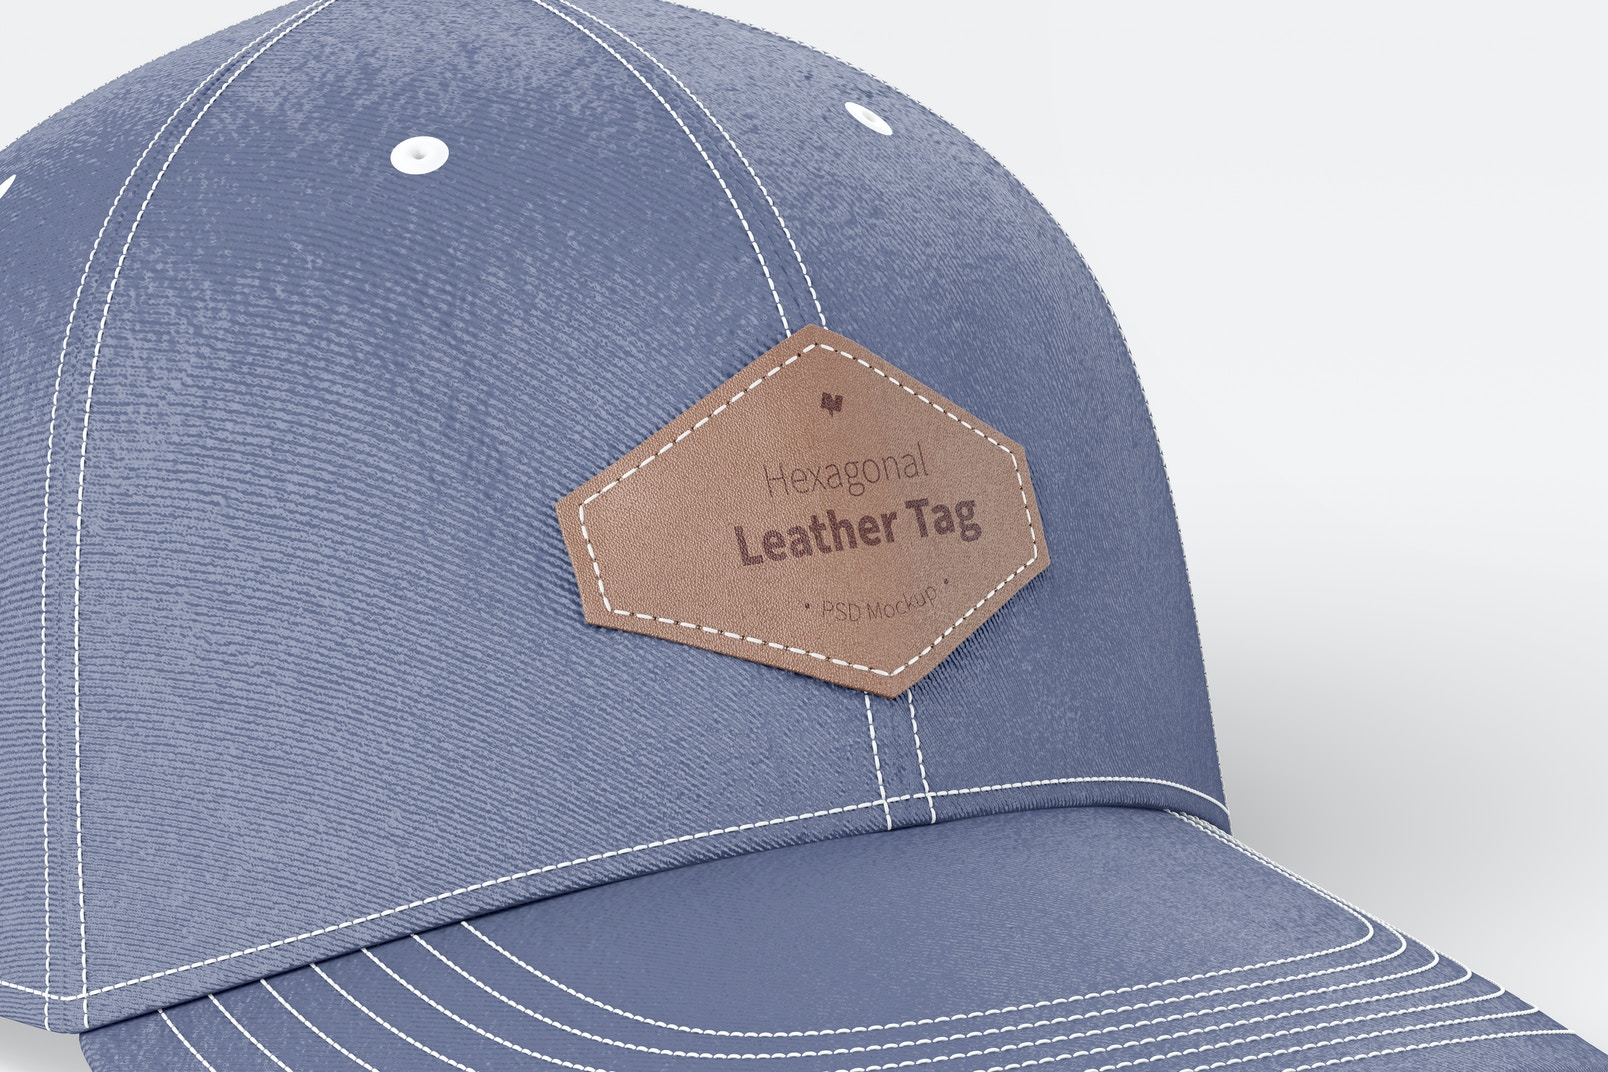 Hexagonal Leather Tags on Cap Mockup, Close Up